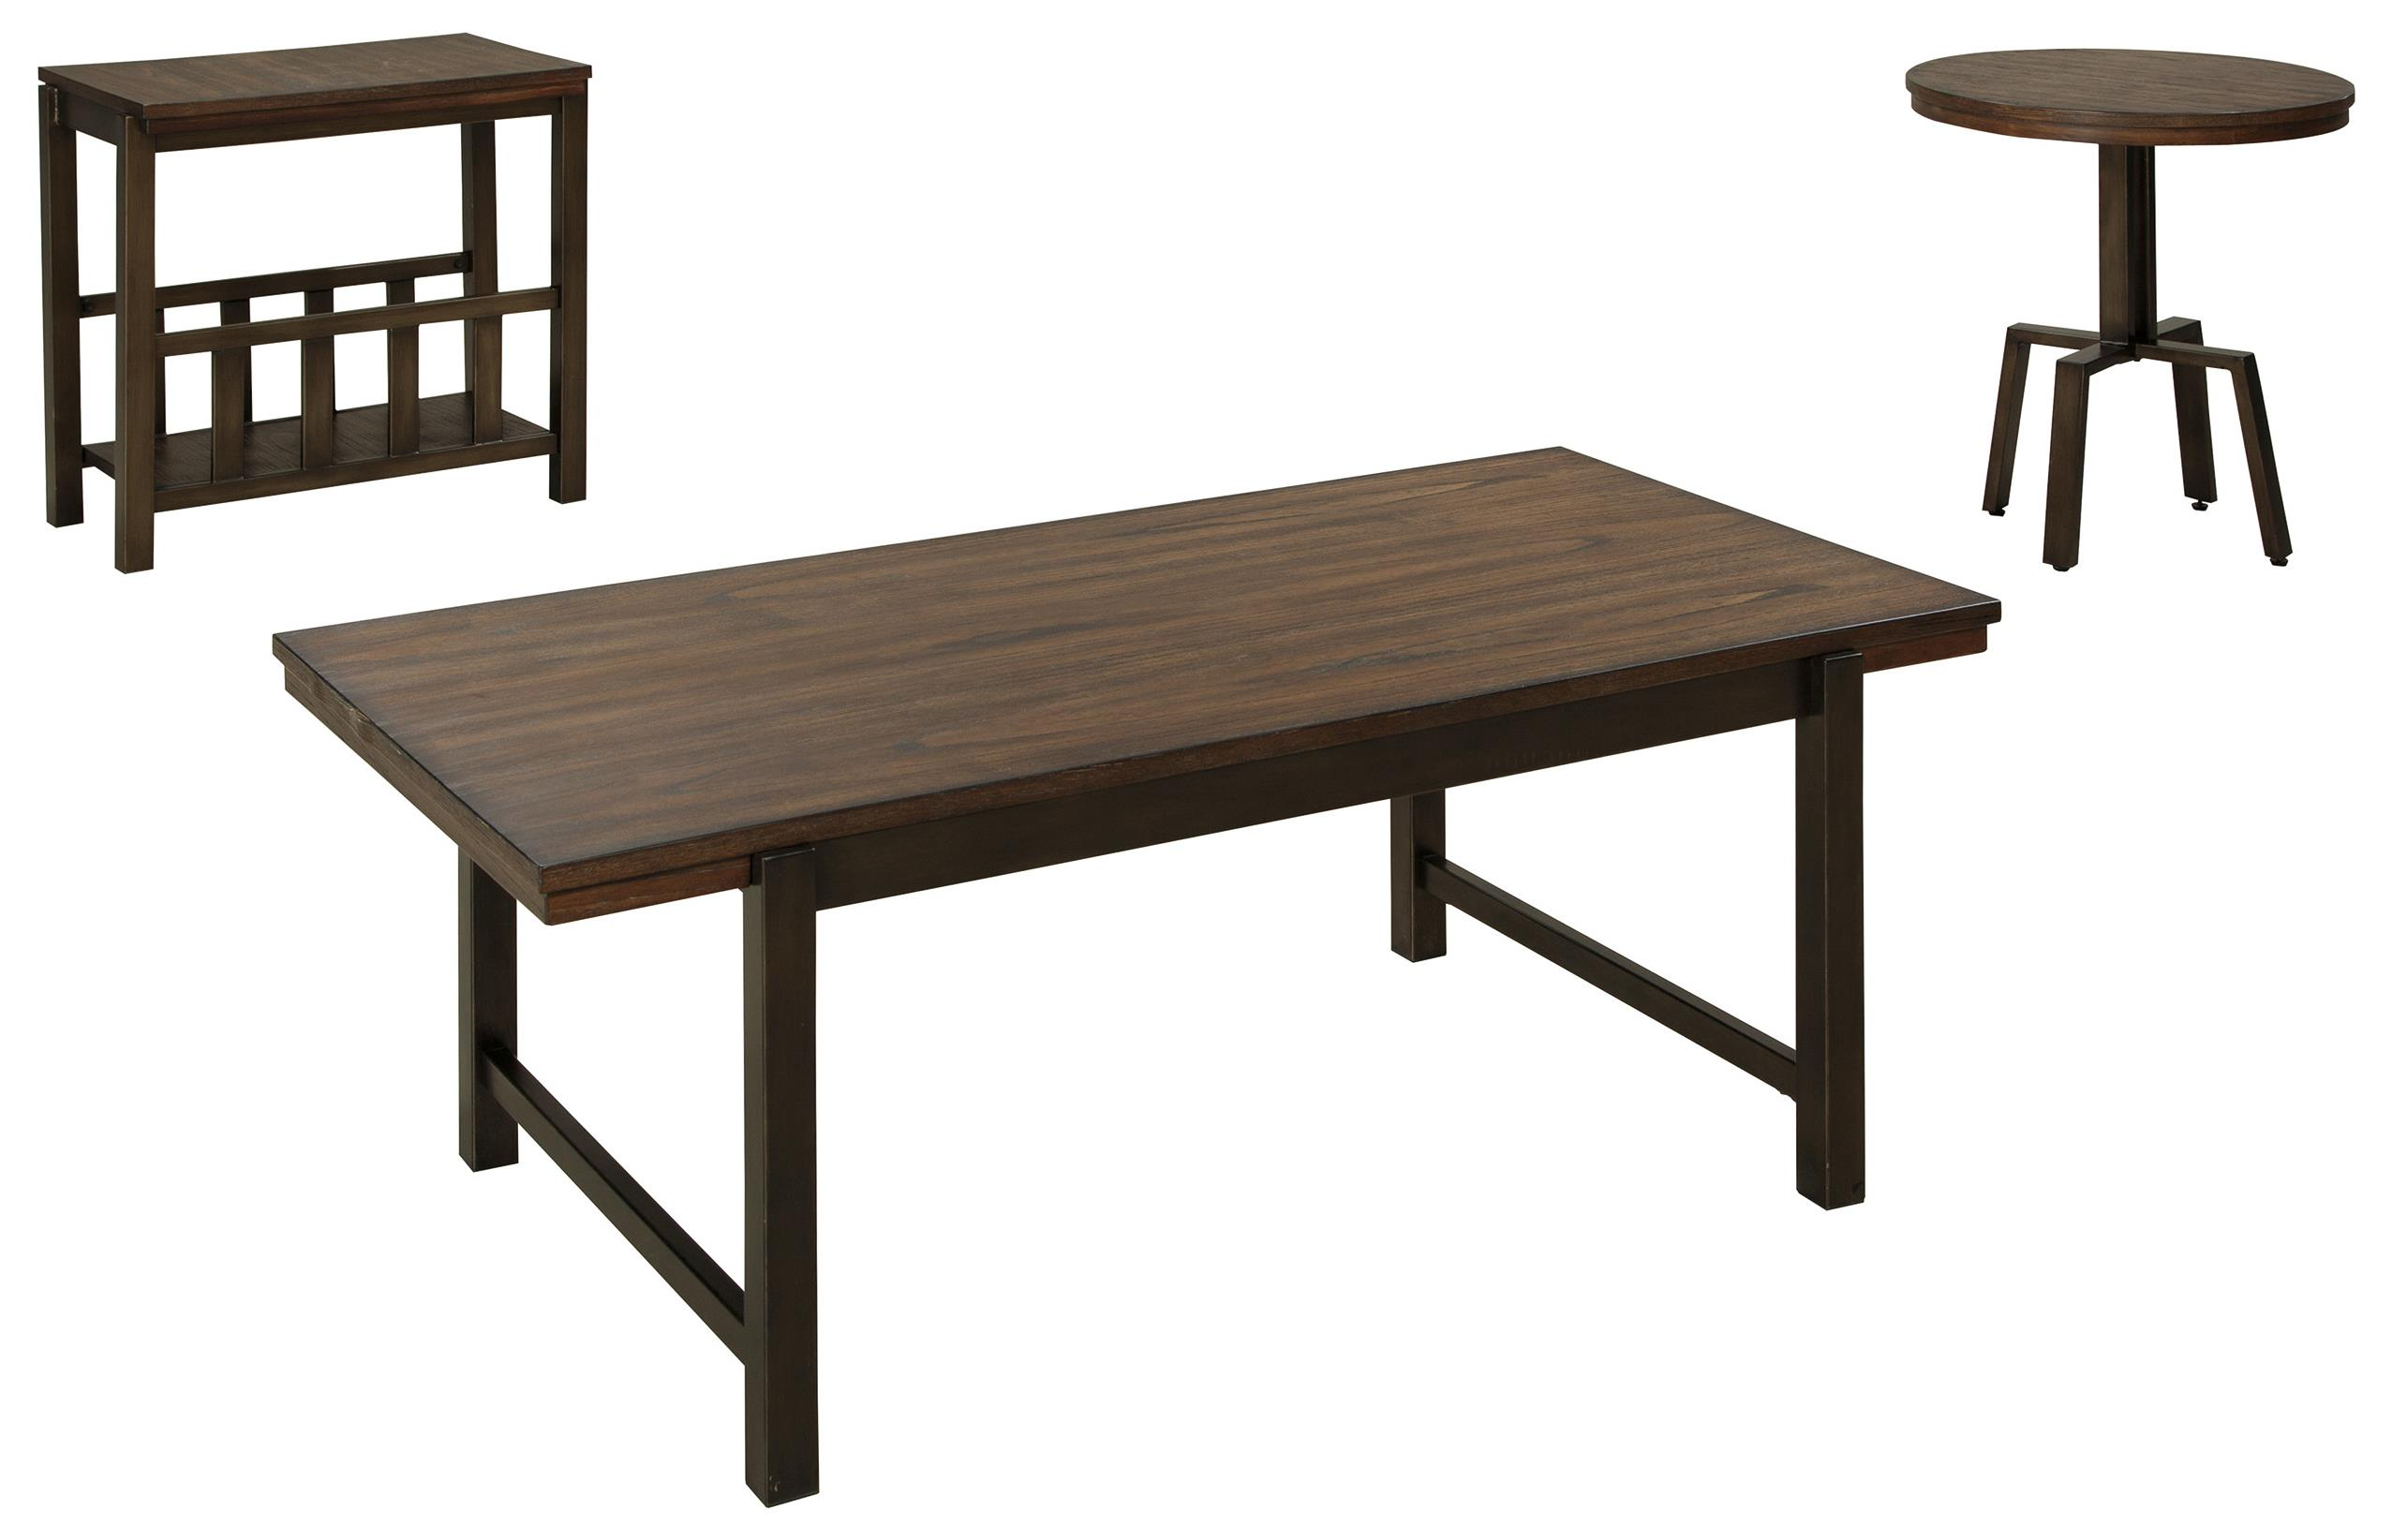 Signature design by ashley riggerton t212 13 industrial for Occasional table manufacturers